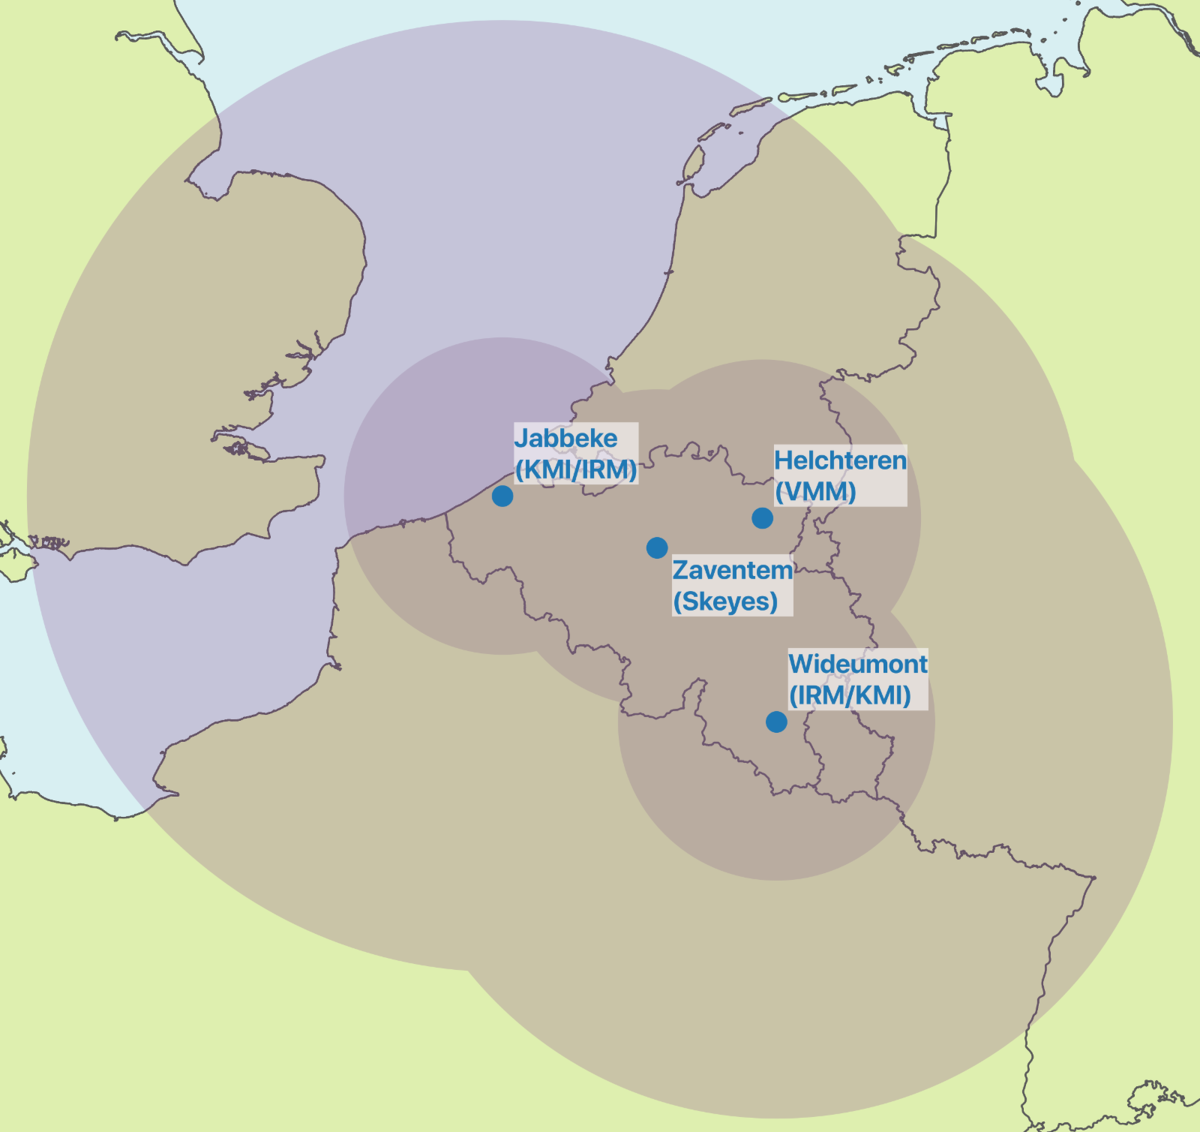 The Belgian network of the meteorological radars. Around every radar is a circle of around 100 km, this is the range within a radar can carry out quantitative precipitation estimates. The larger area represents the full range.